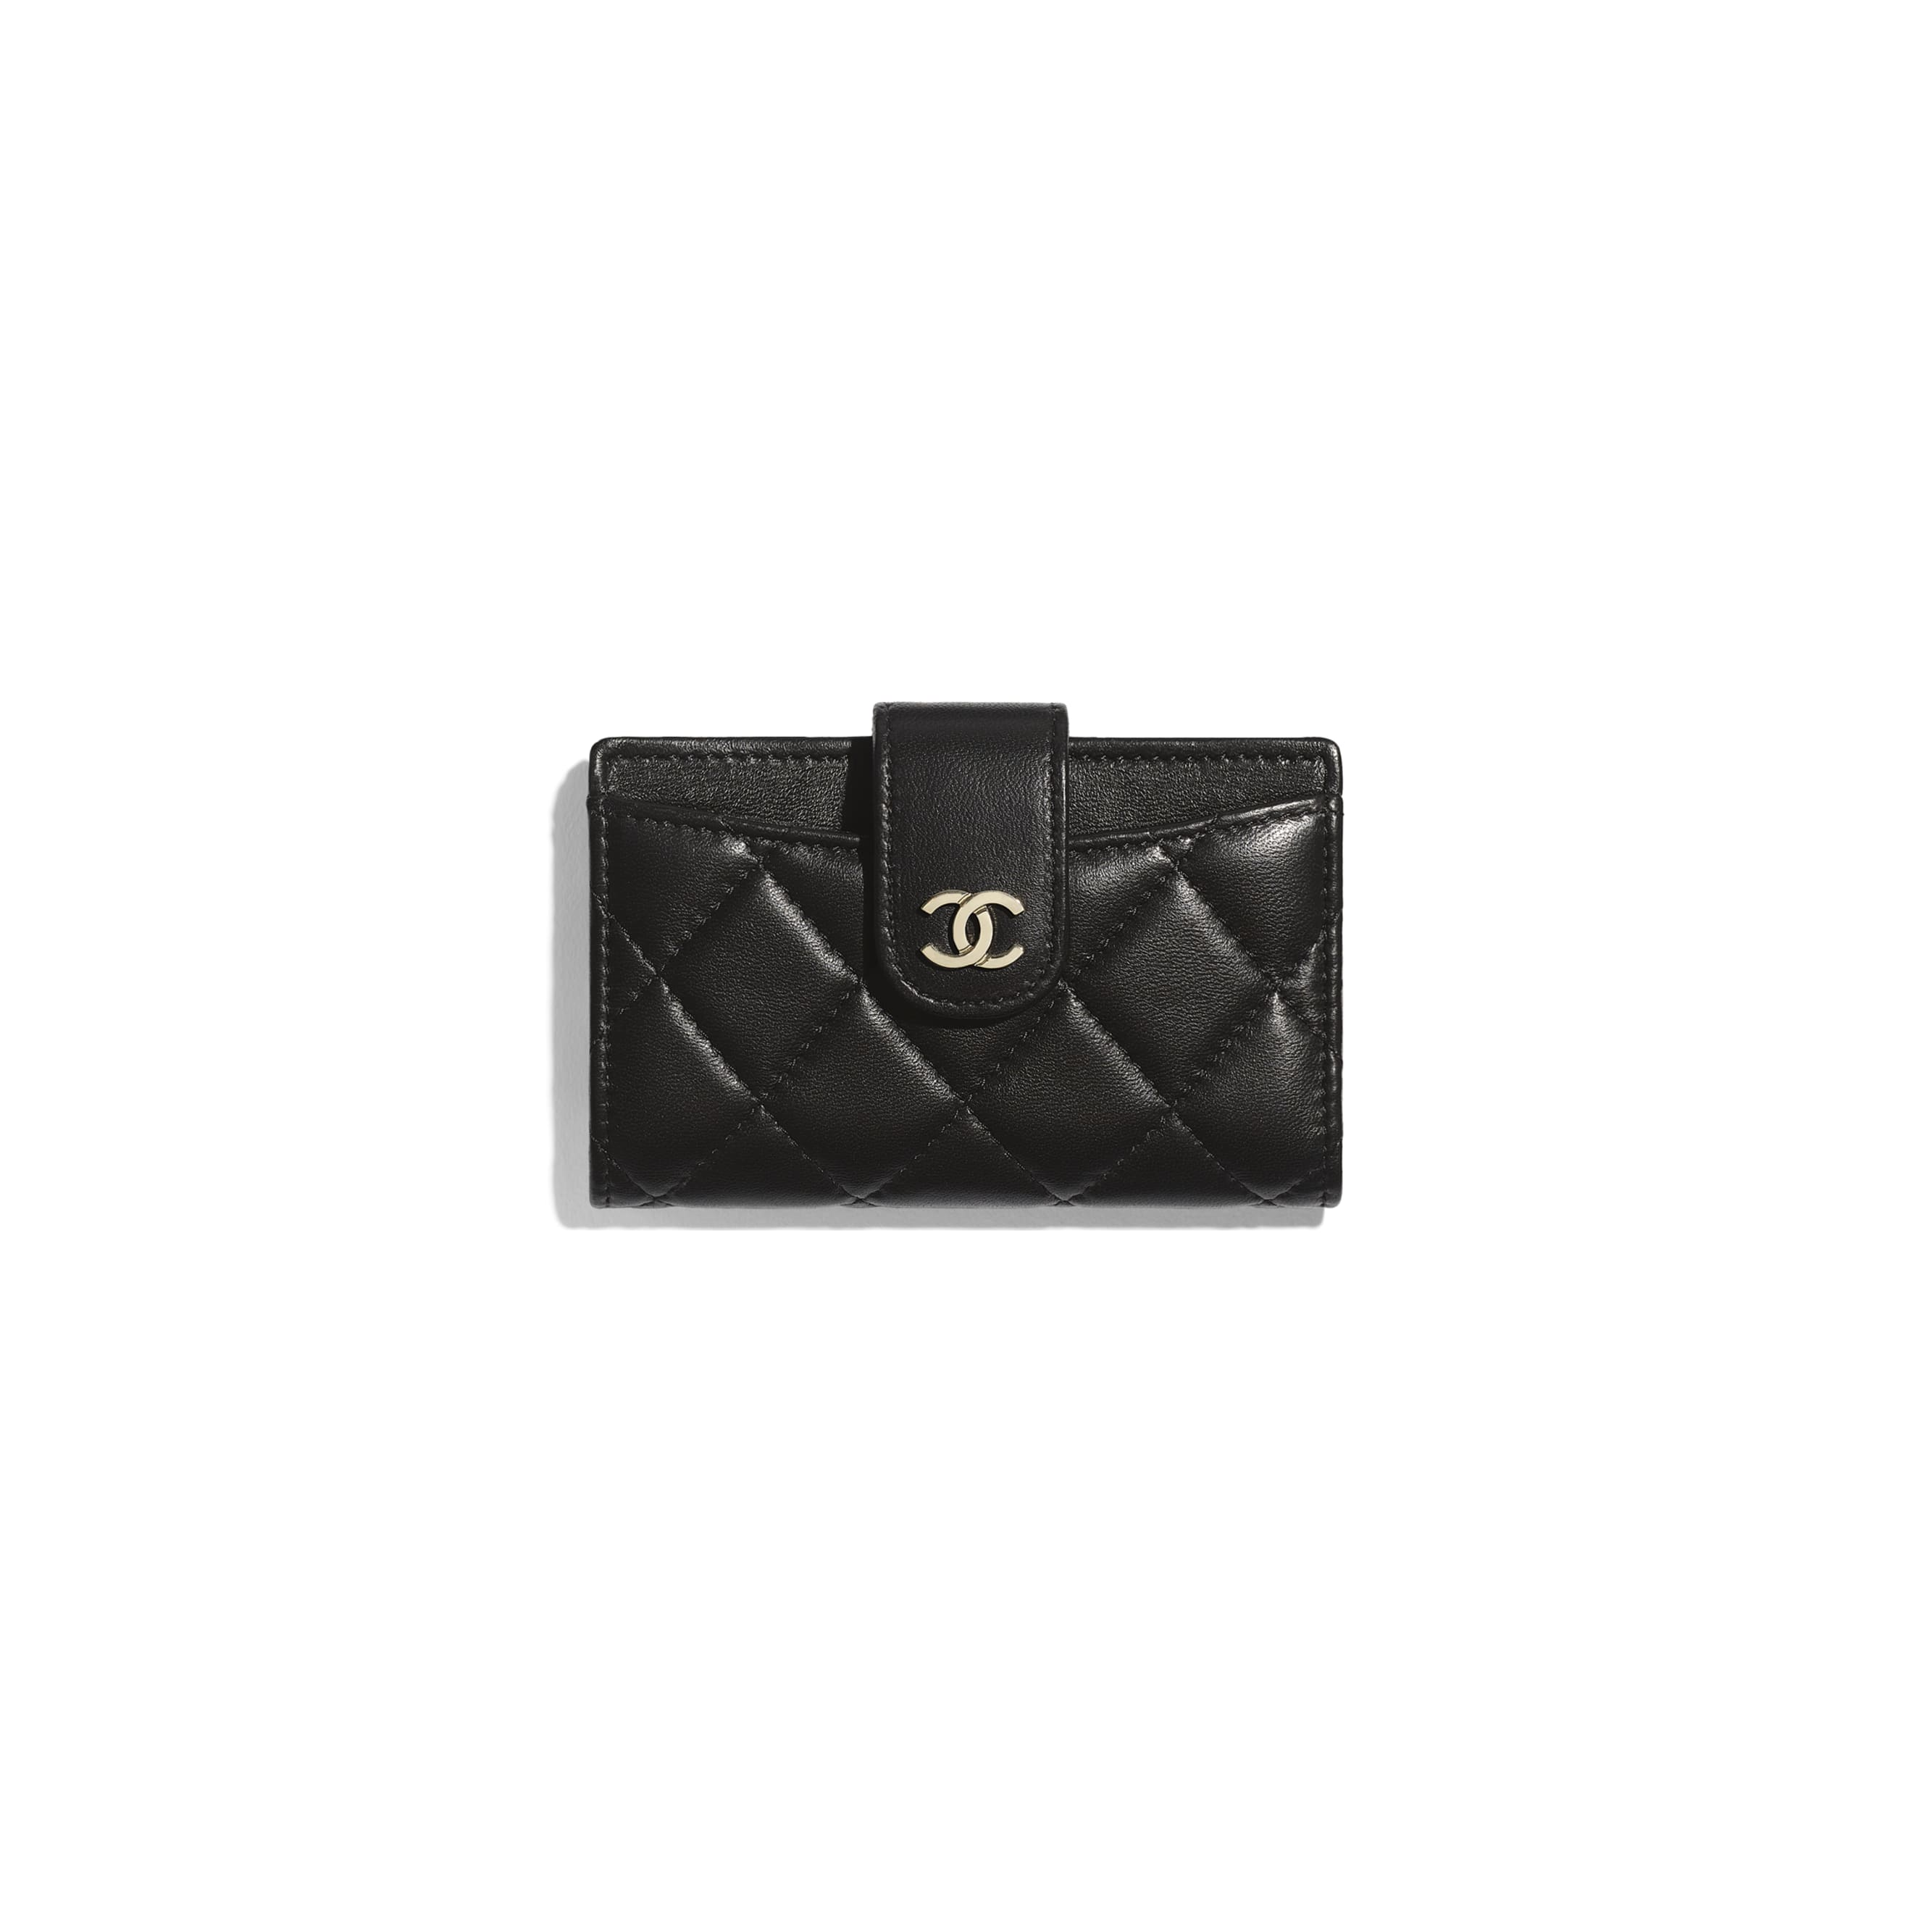 Classic Small Wallet - Black - Lambskin - CHANEL - Default view - see standard sized version